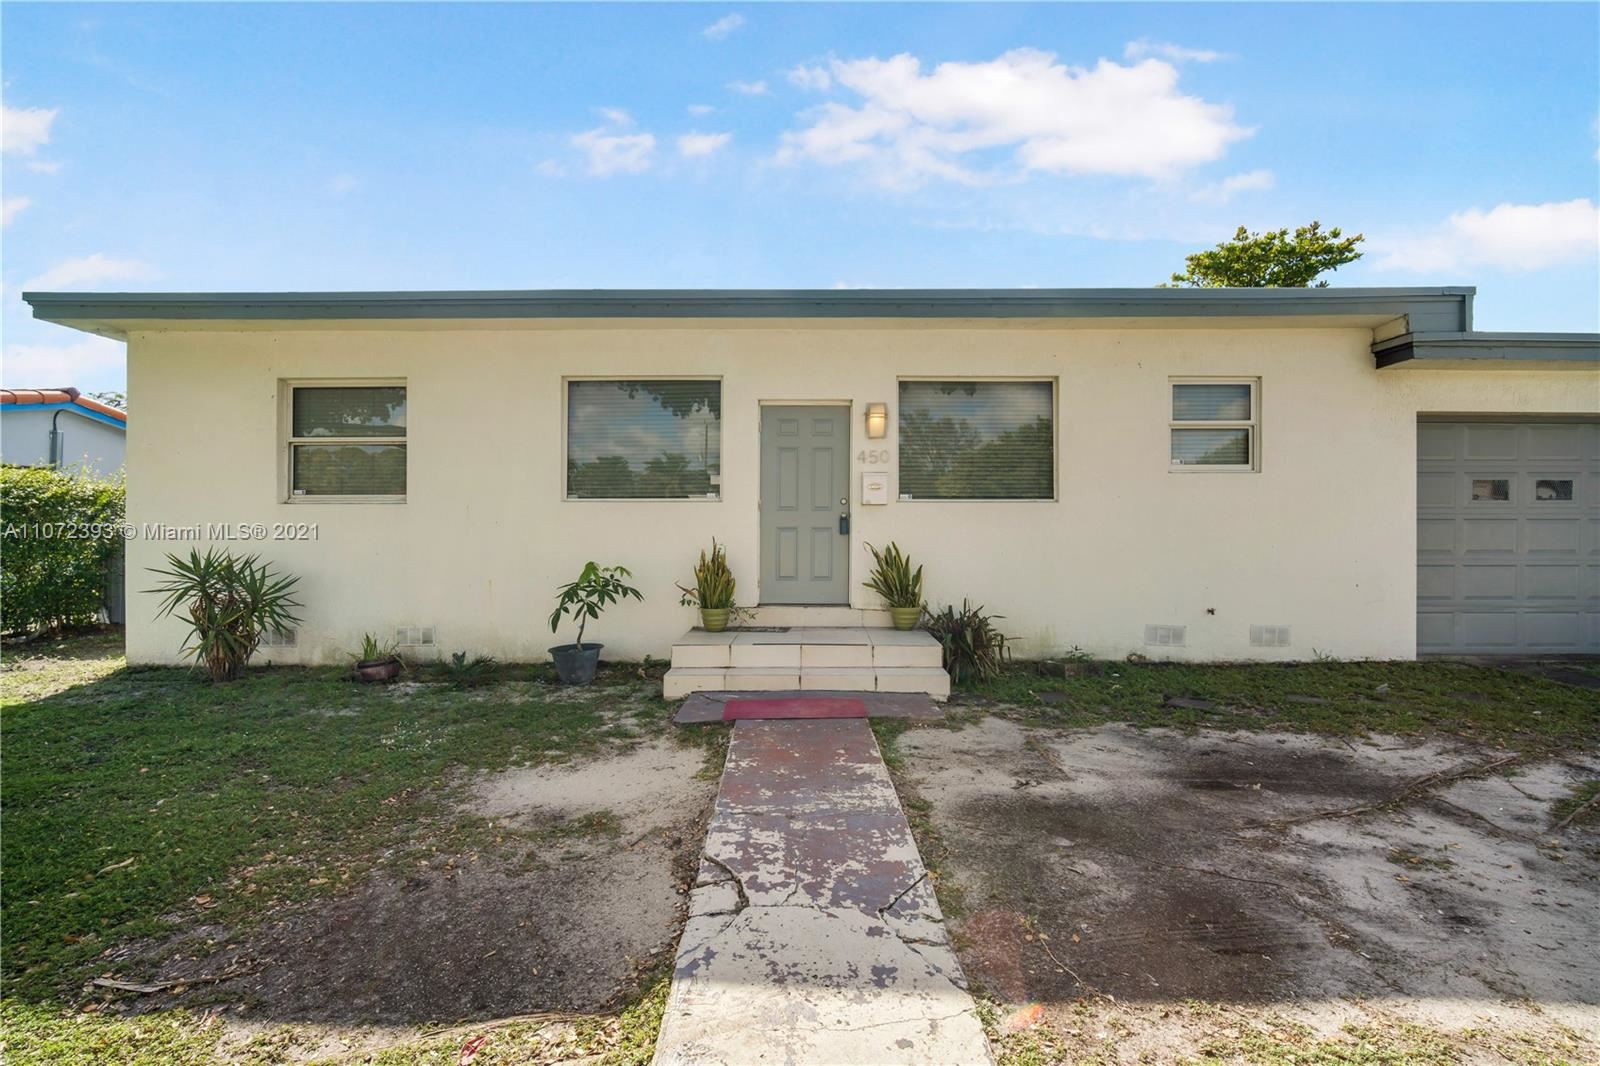 Photo of 450 NW 125 St, North Miami, FL 33168 (MLS # A11072393)